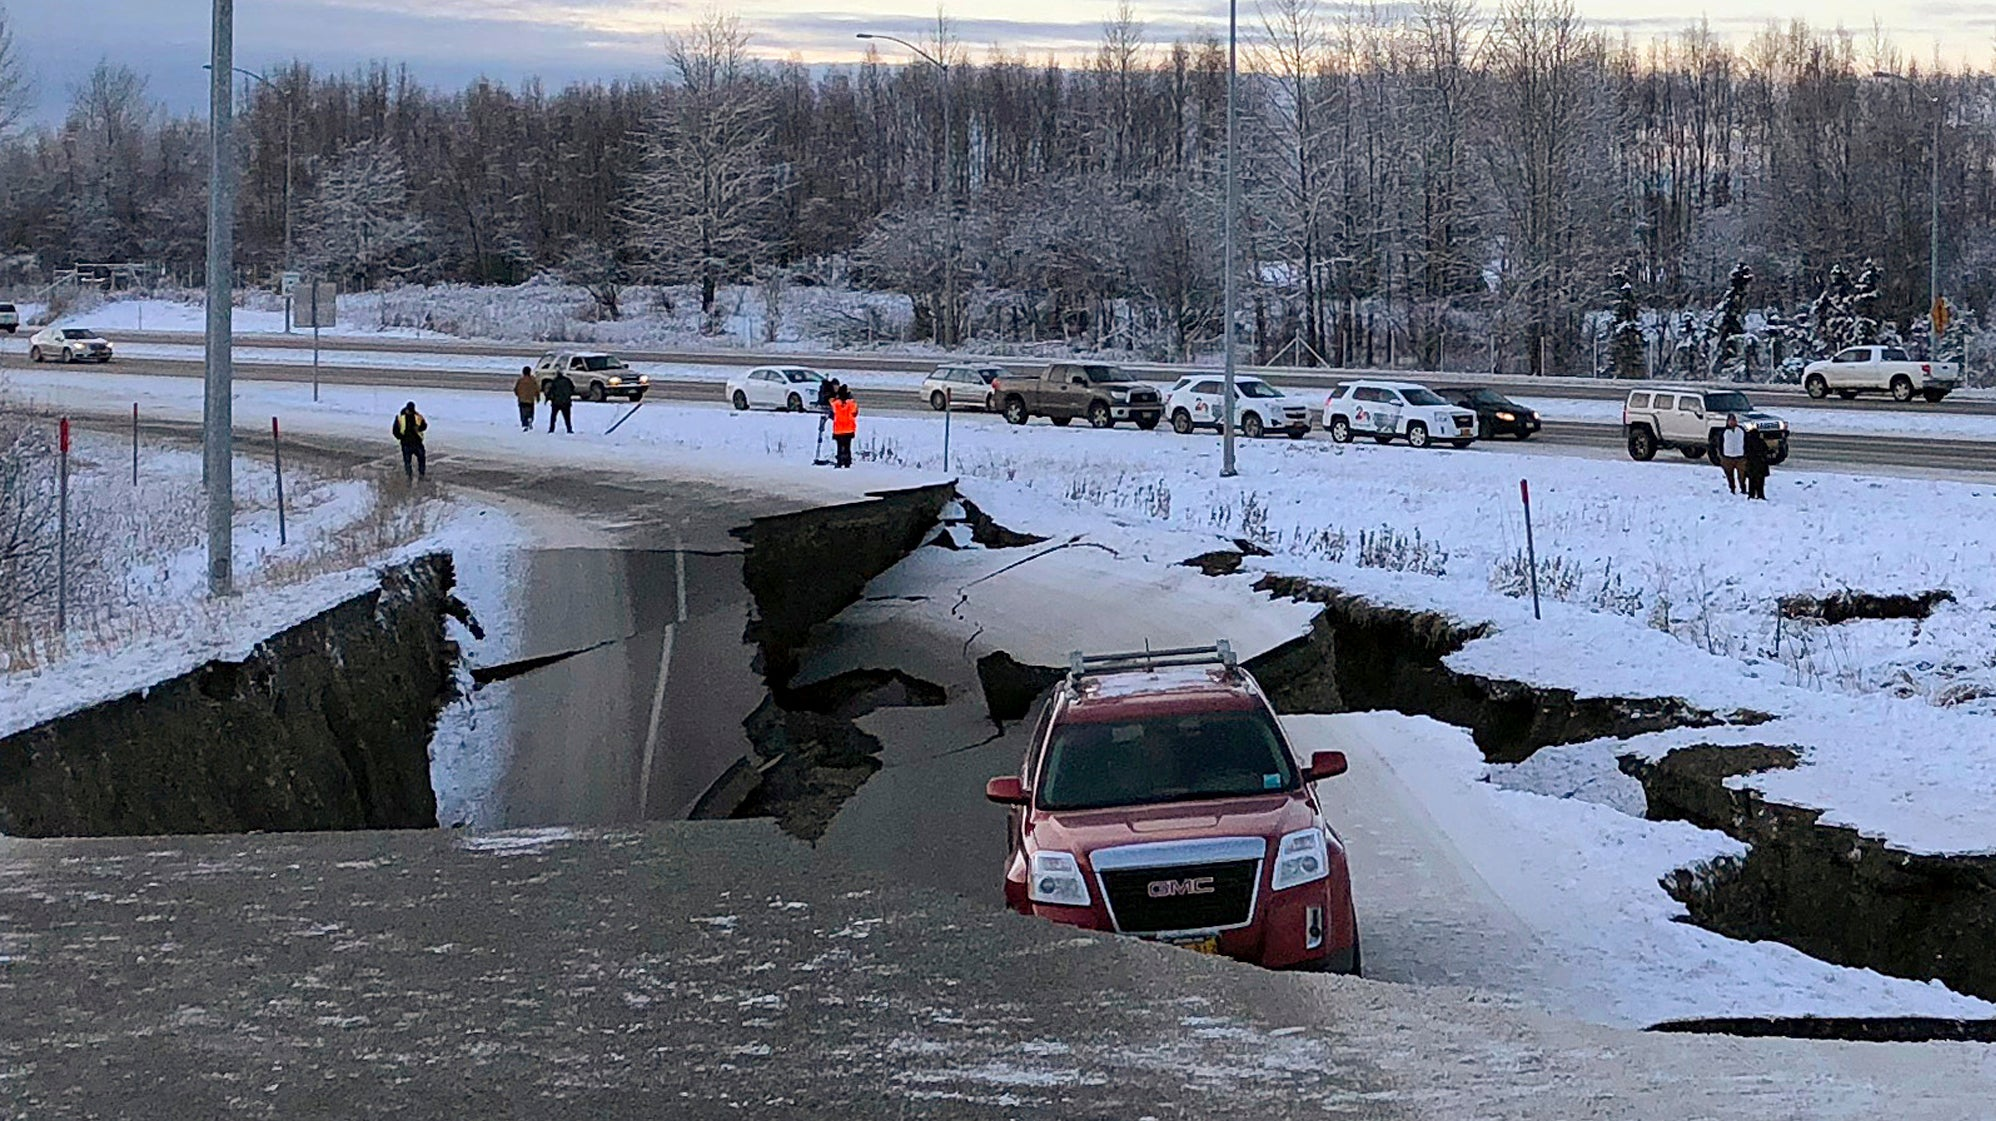 After 7.0 Earthquake Shakes Alaska, Governor Says Impact Could Last 'Quite Some Time'